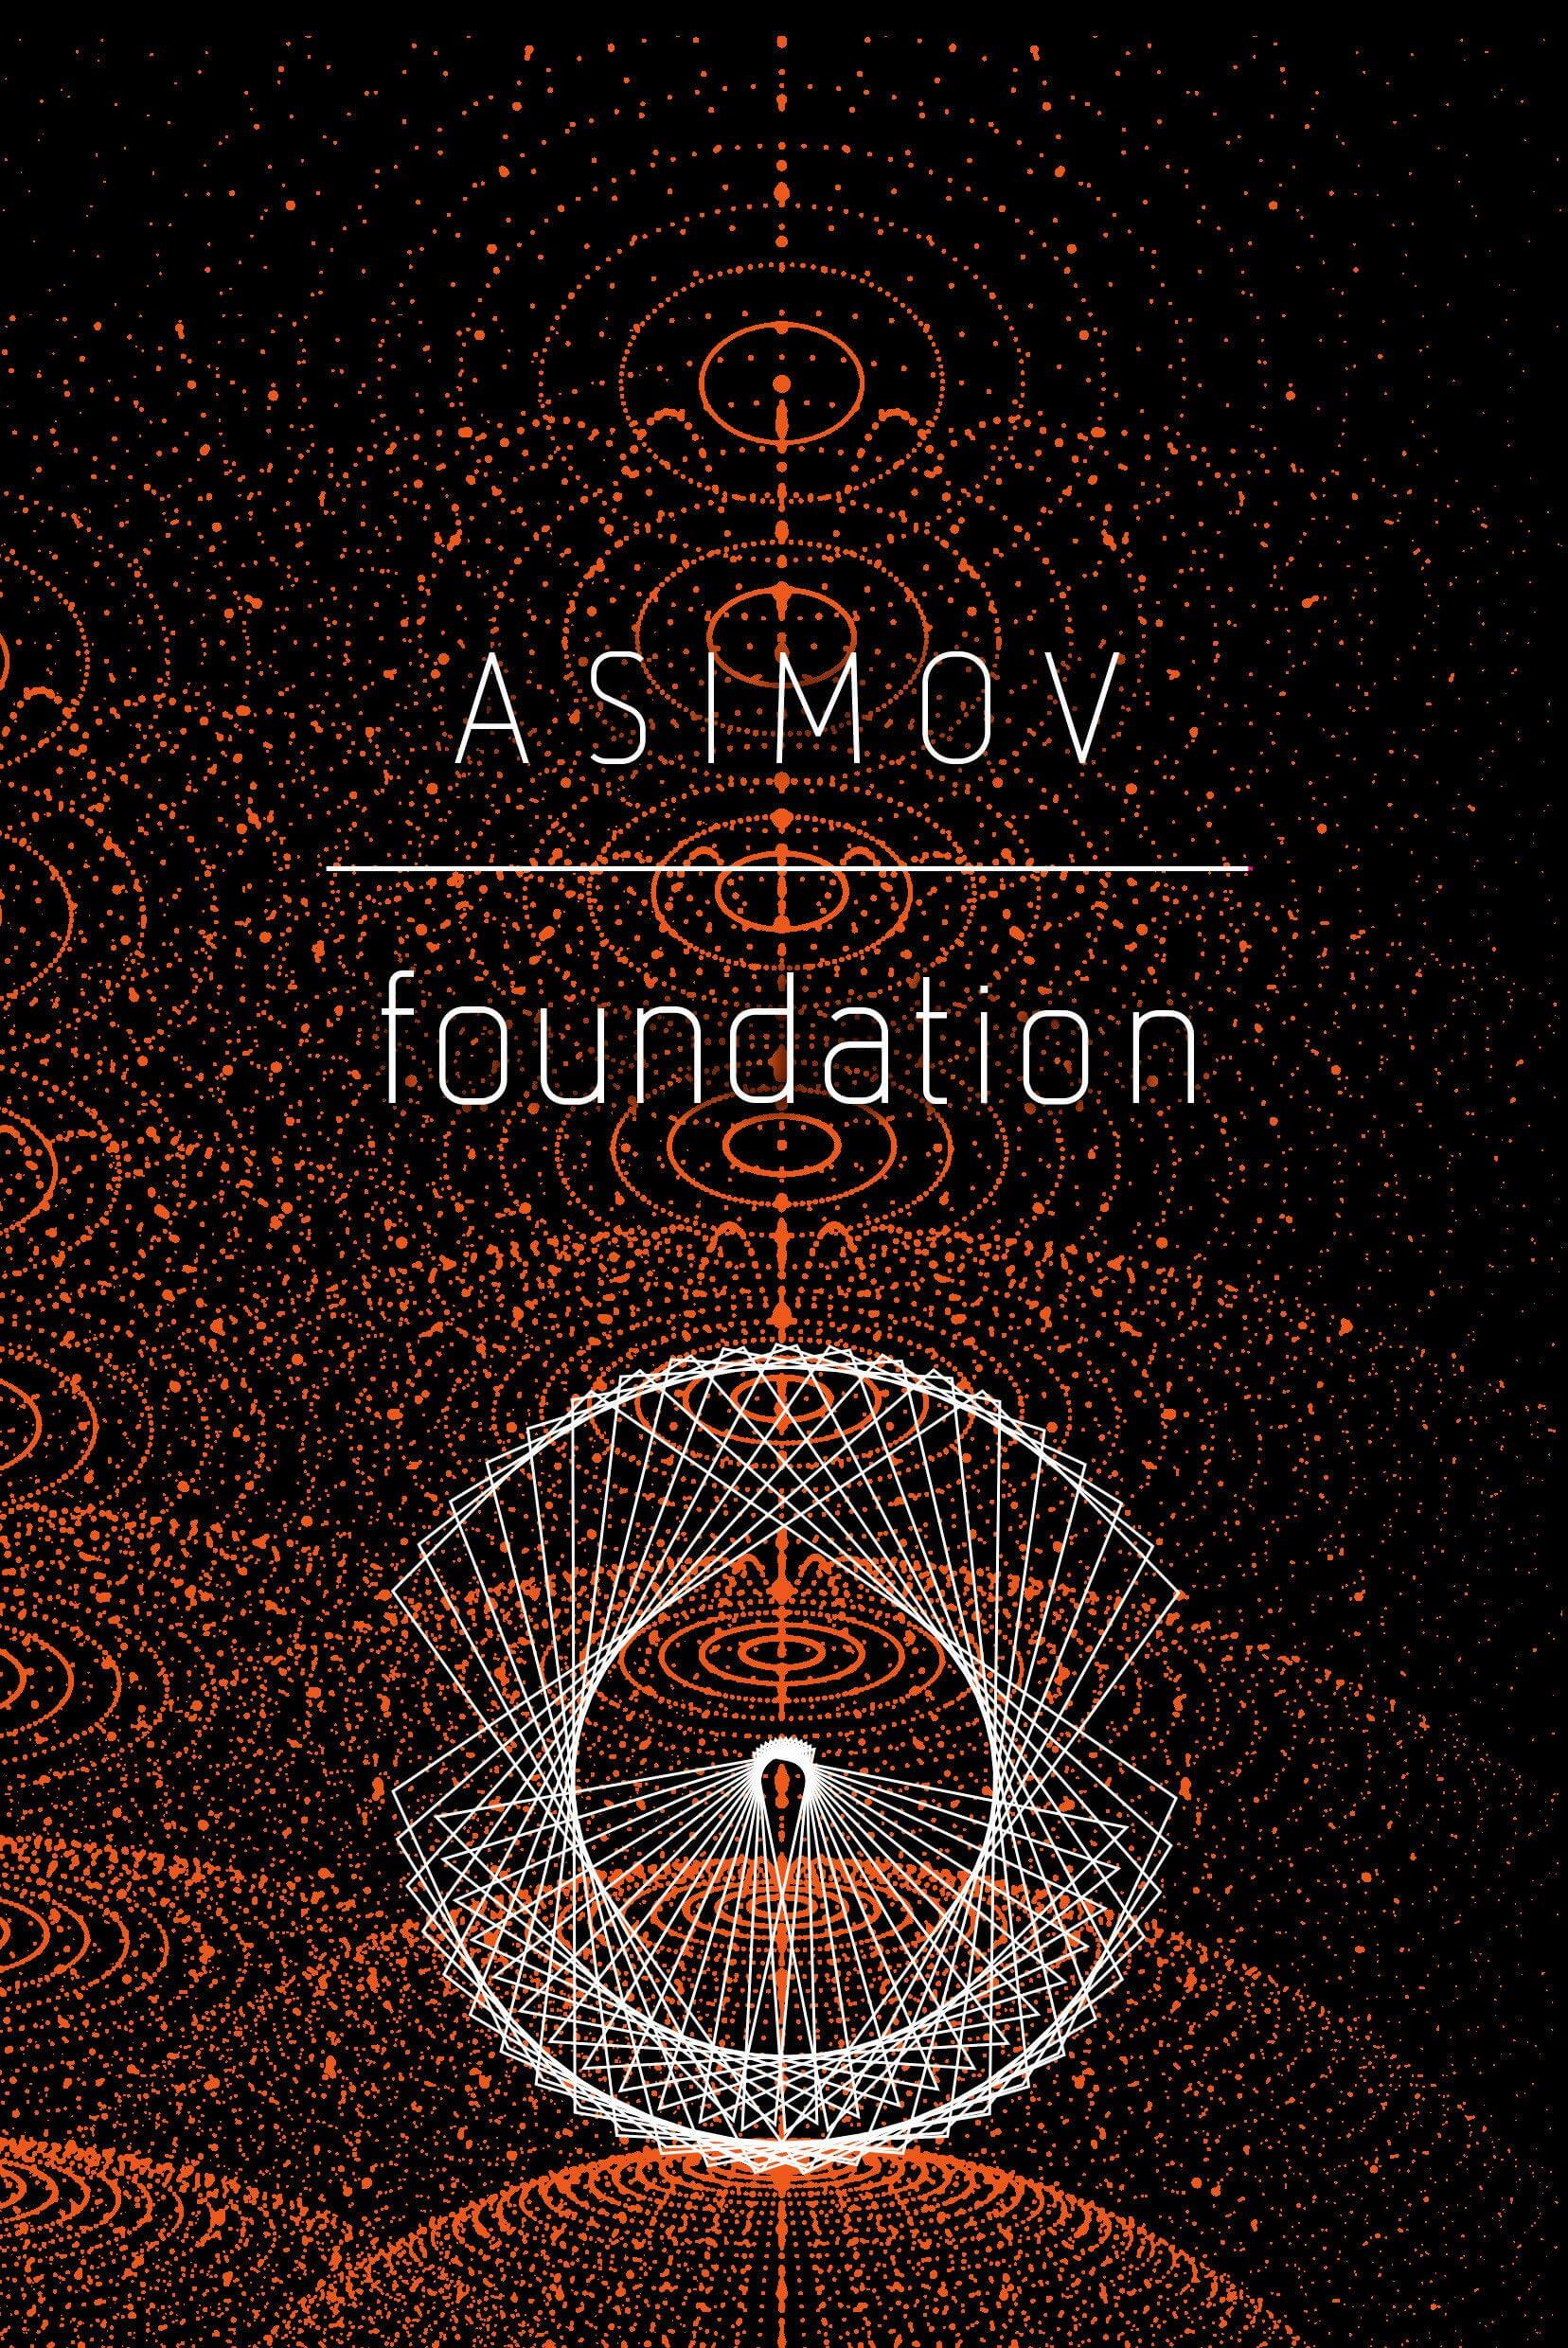 Foundation by Isaac Asimov